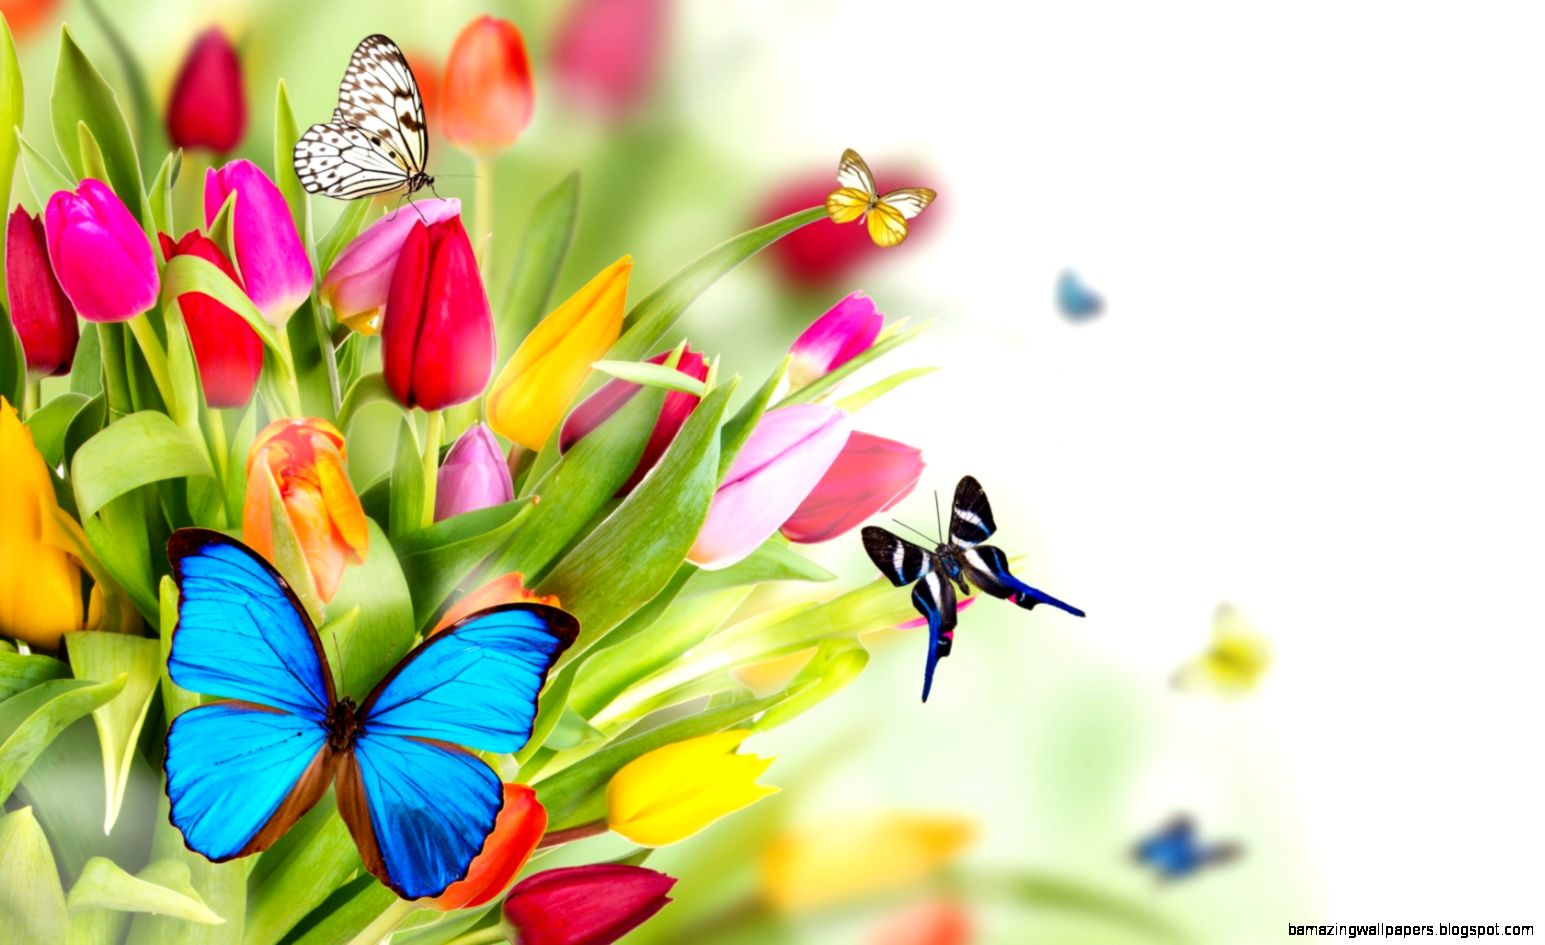 Butterflies Hd Wallpaper 1600x1200PX  Wallpaper Butterflies